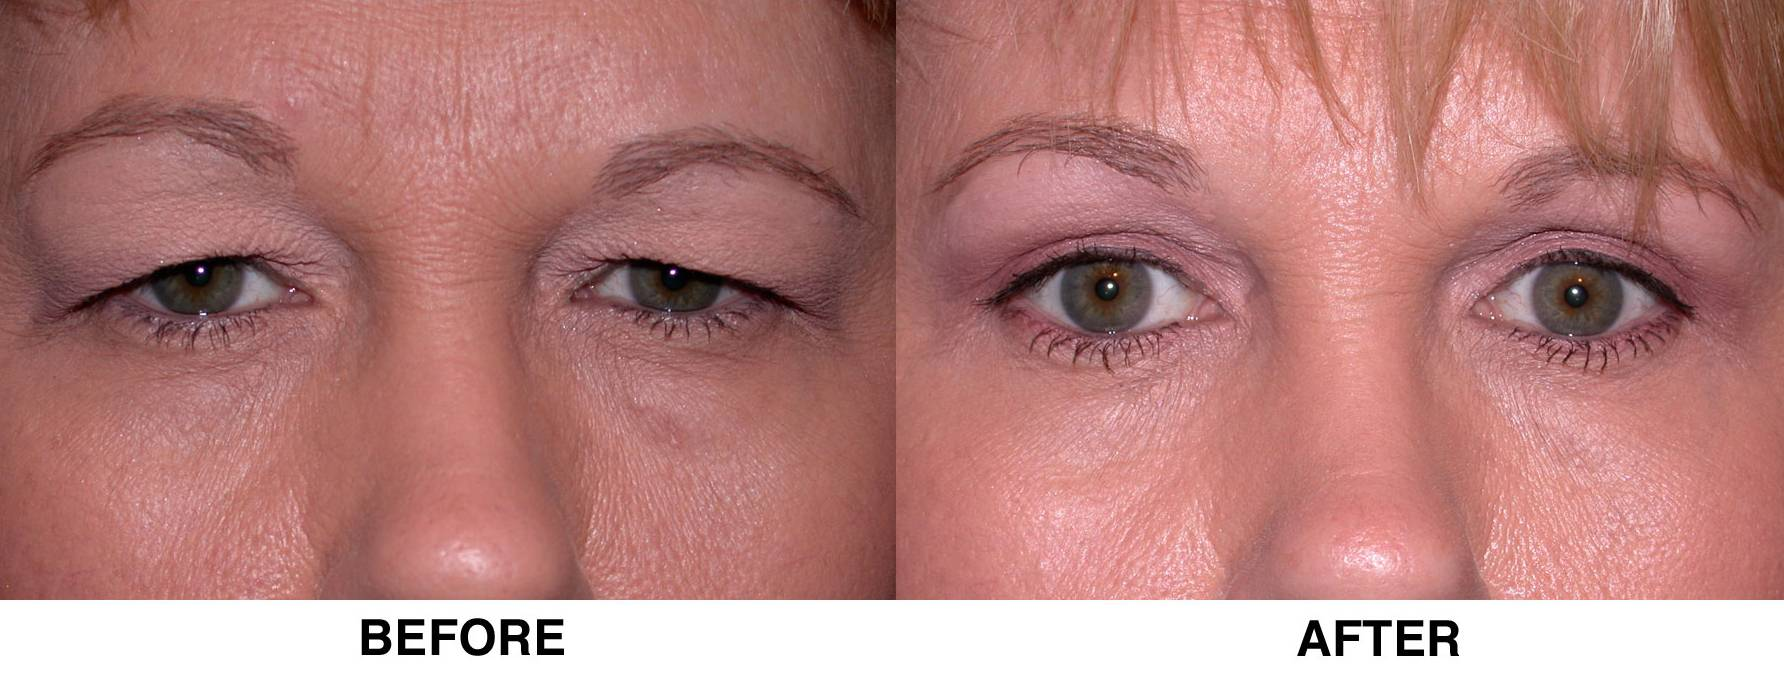 blepharoplasty before and after2